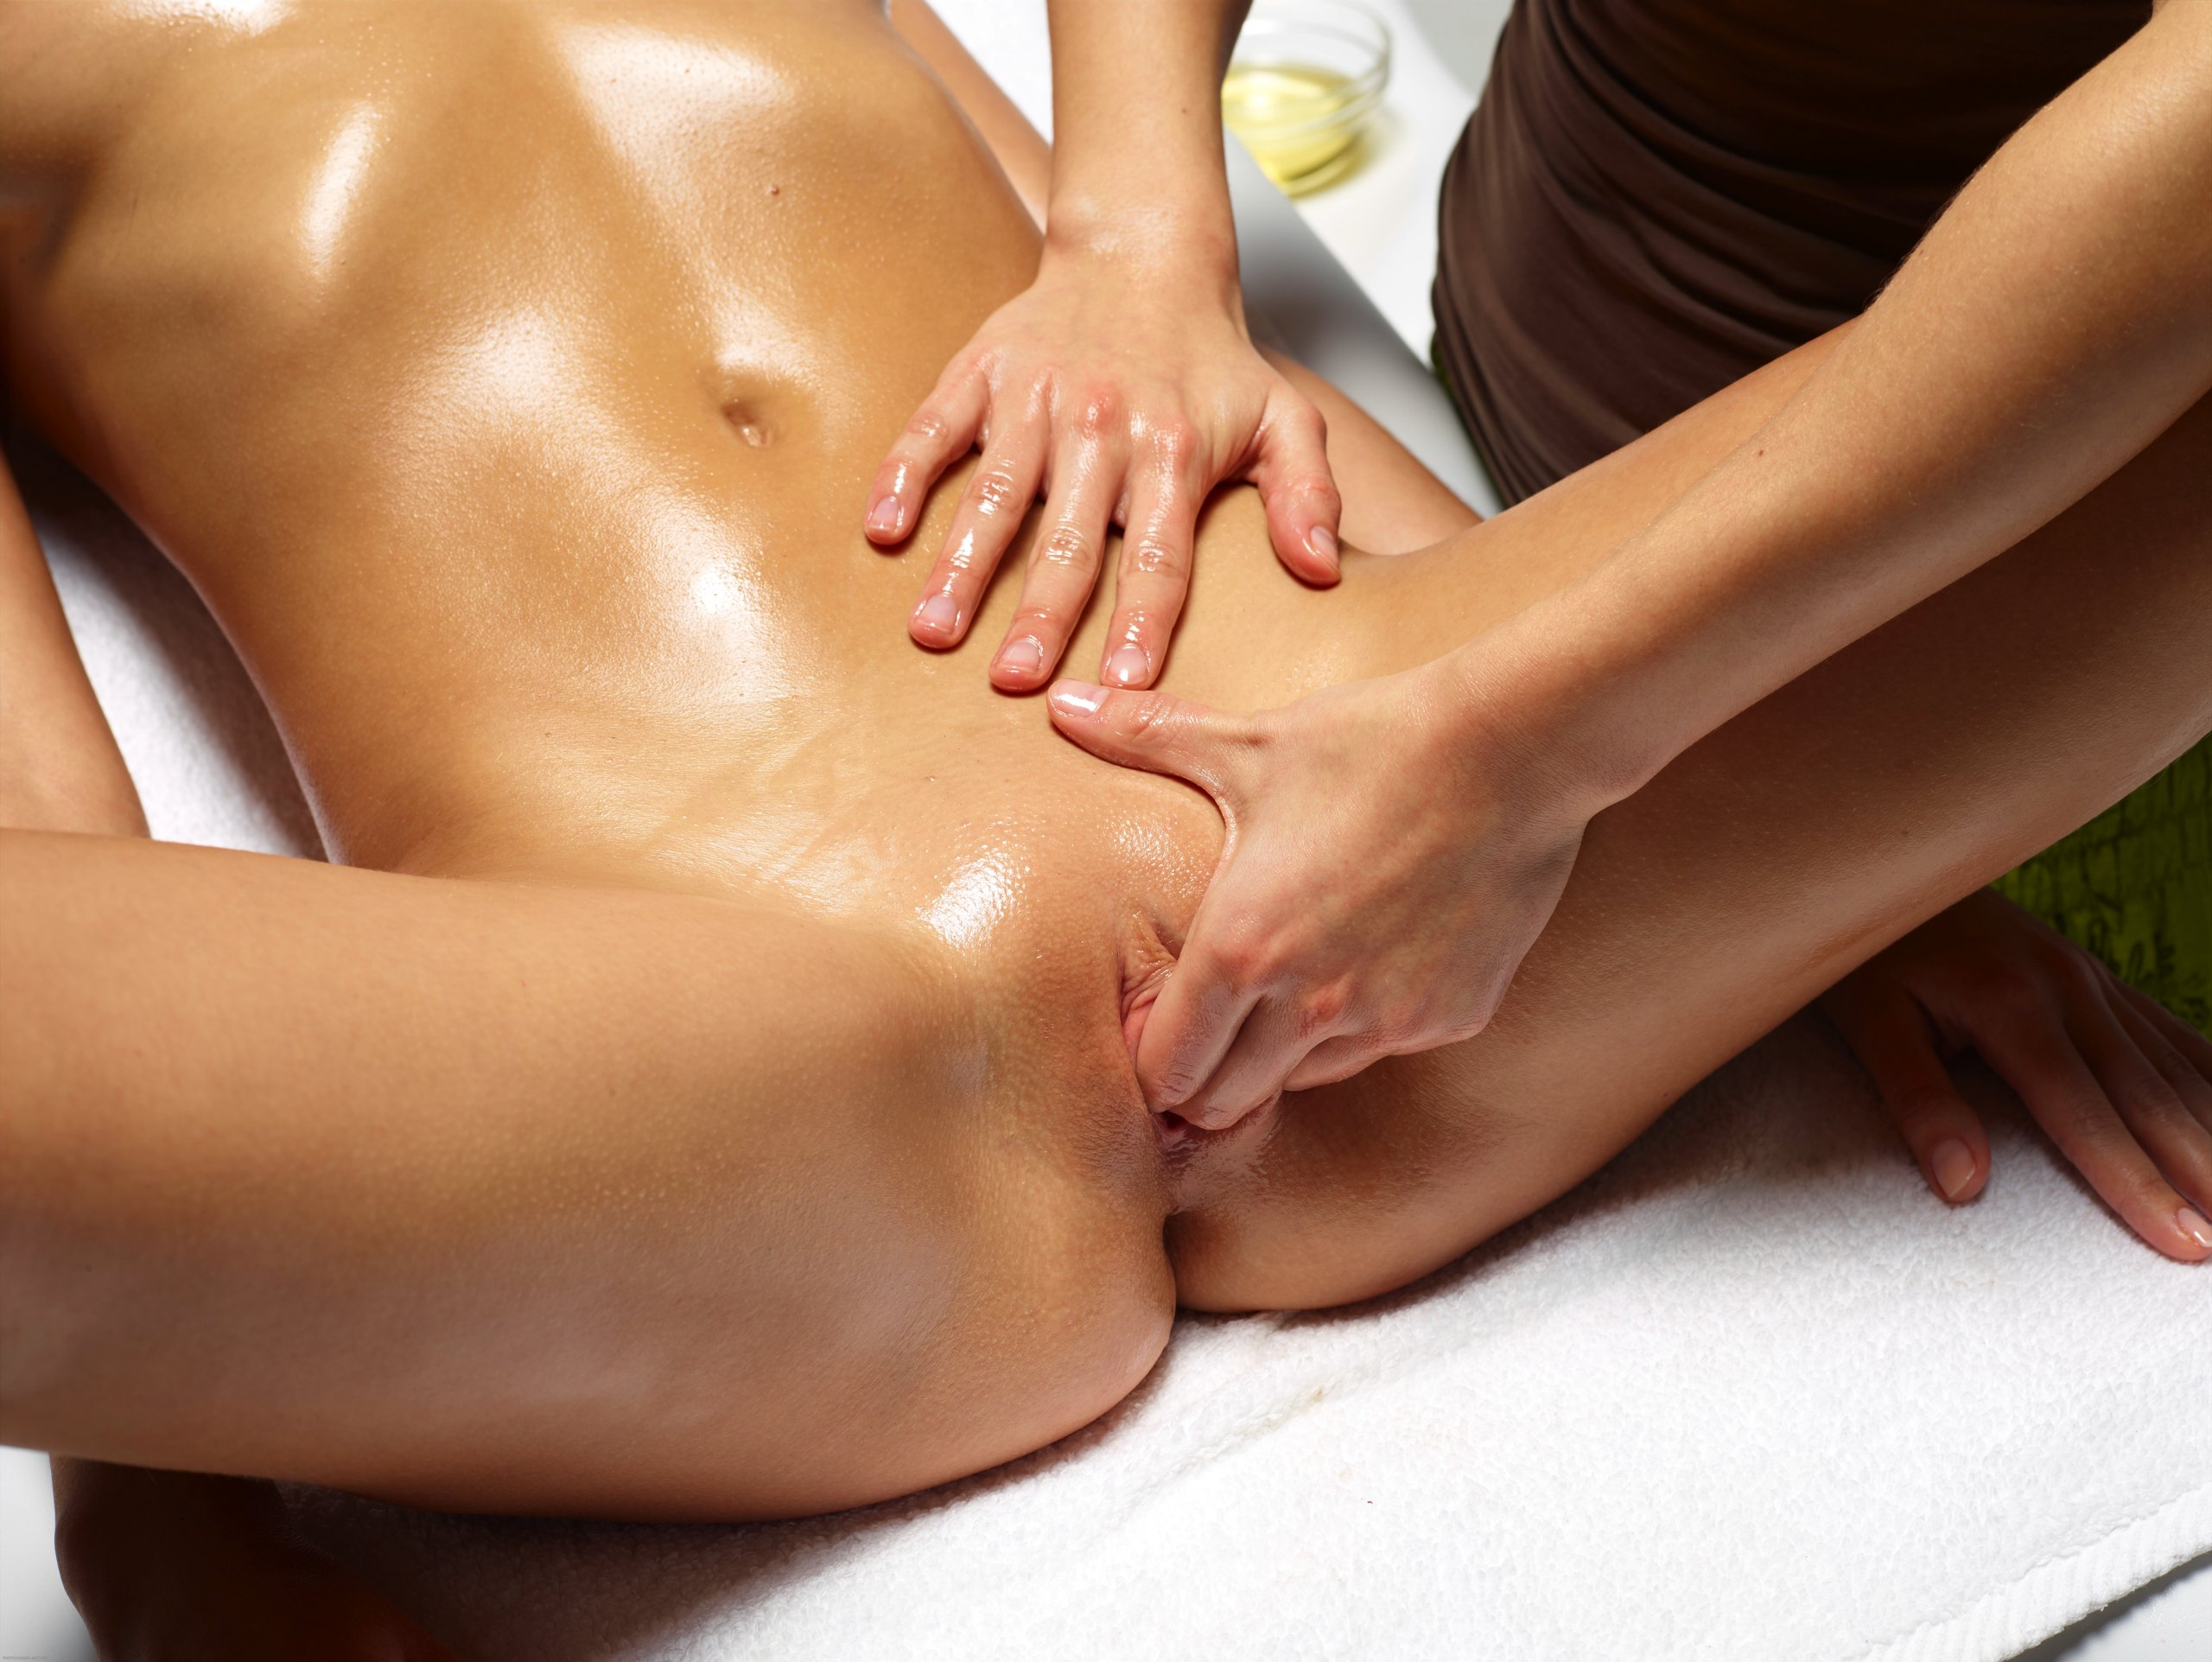 Massage Parlors In Sussex County Nj Hotel Massage Happy Ending The Olive Seed